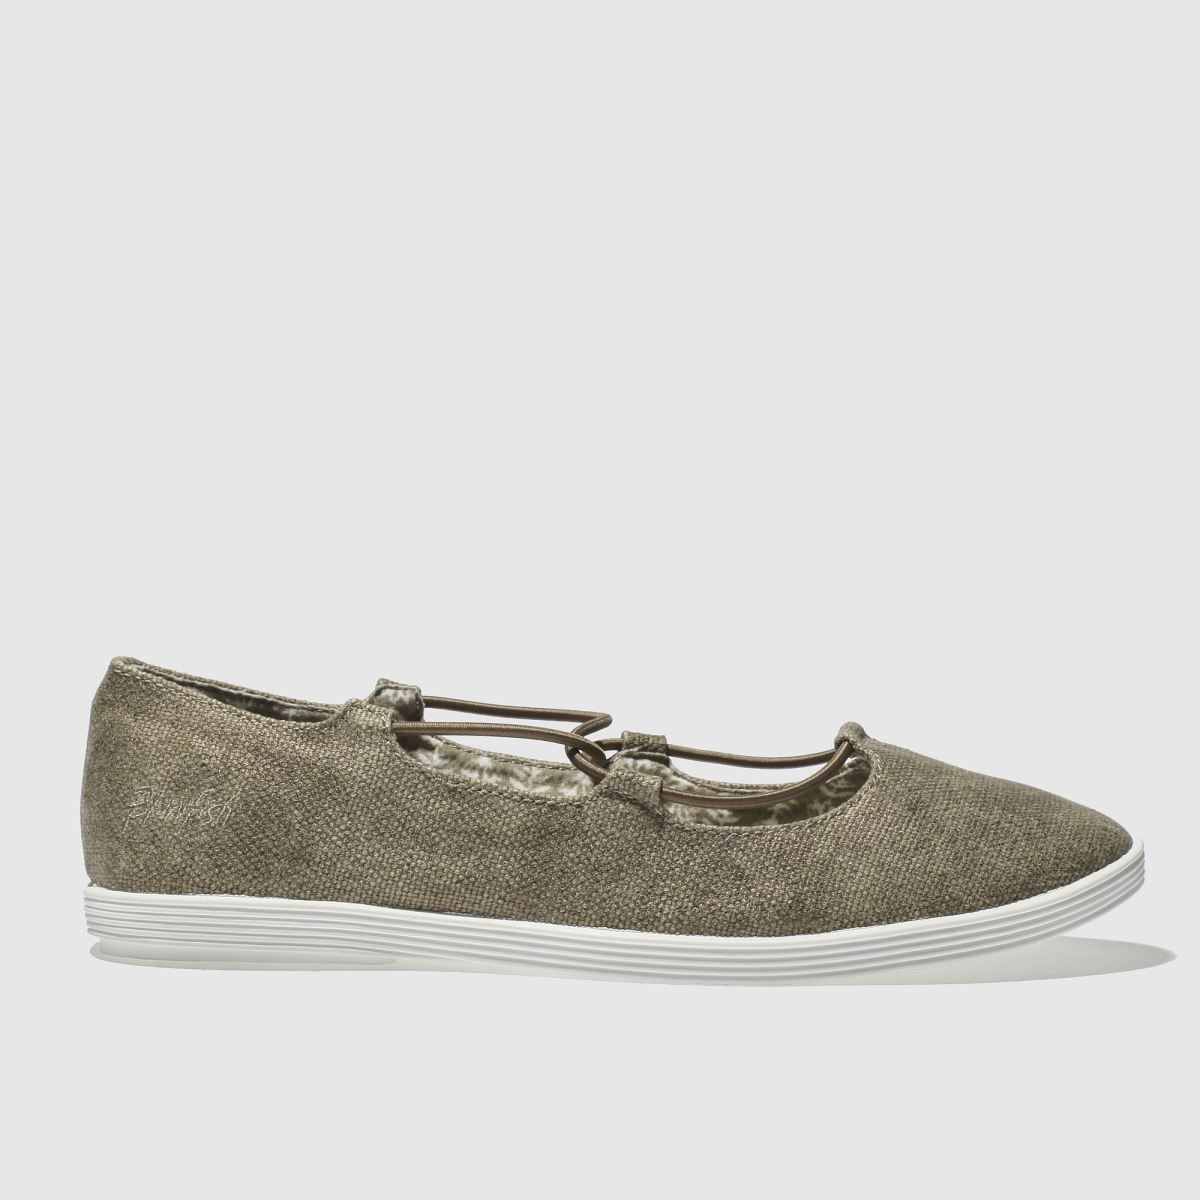 Blowfish Bronze Gastby Flat Shoes